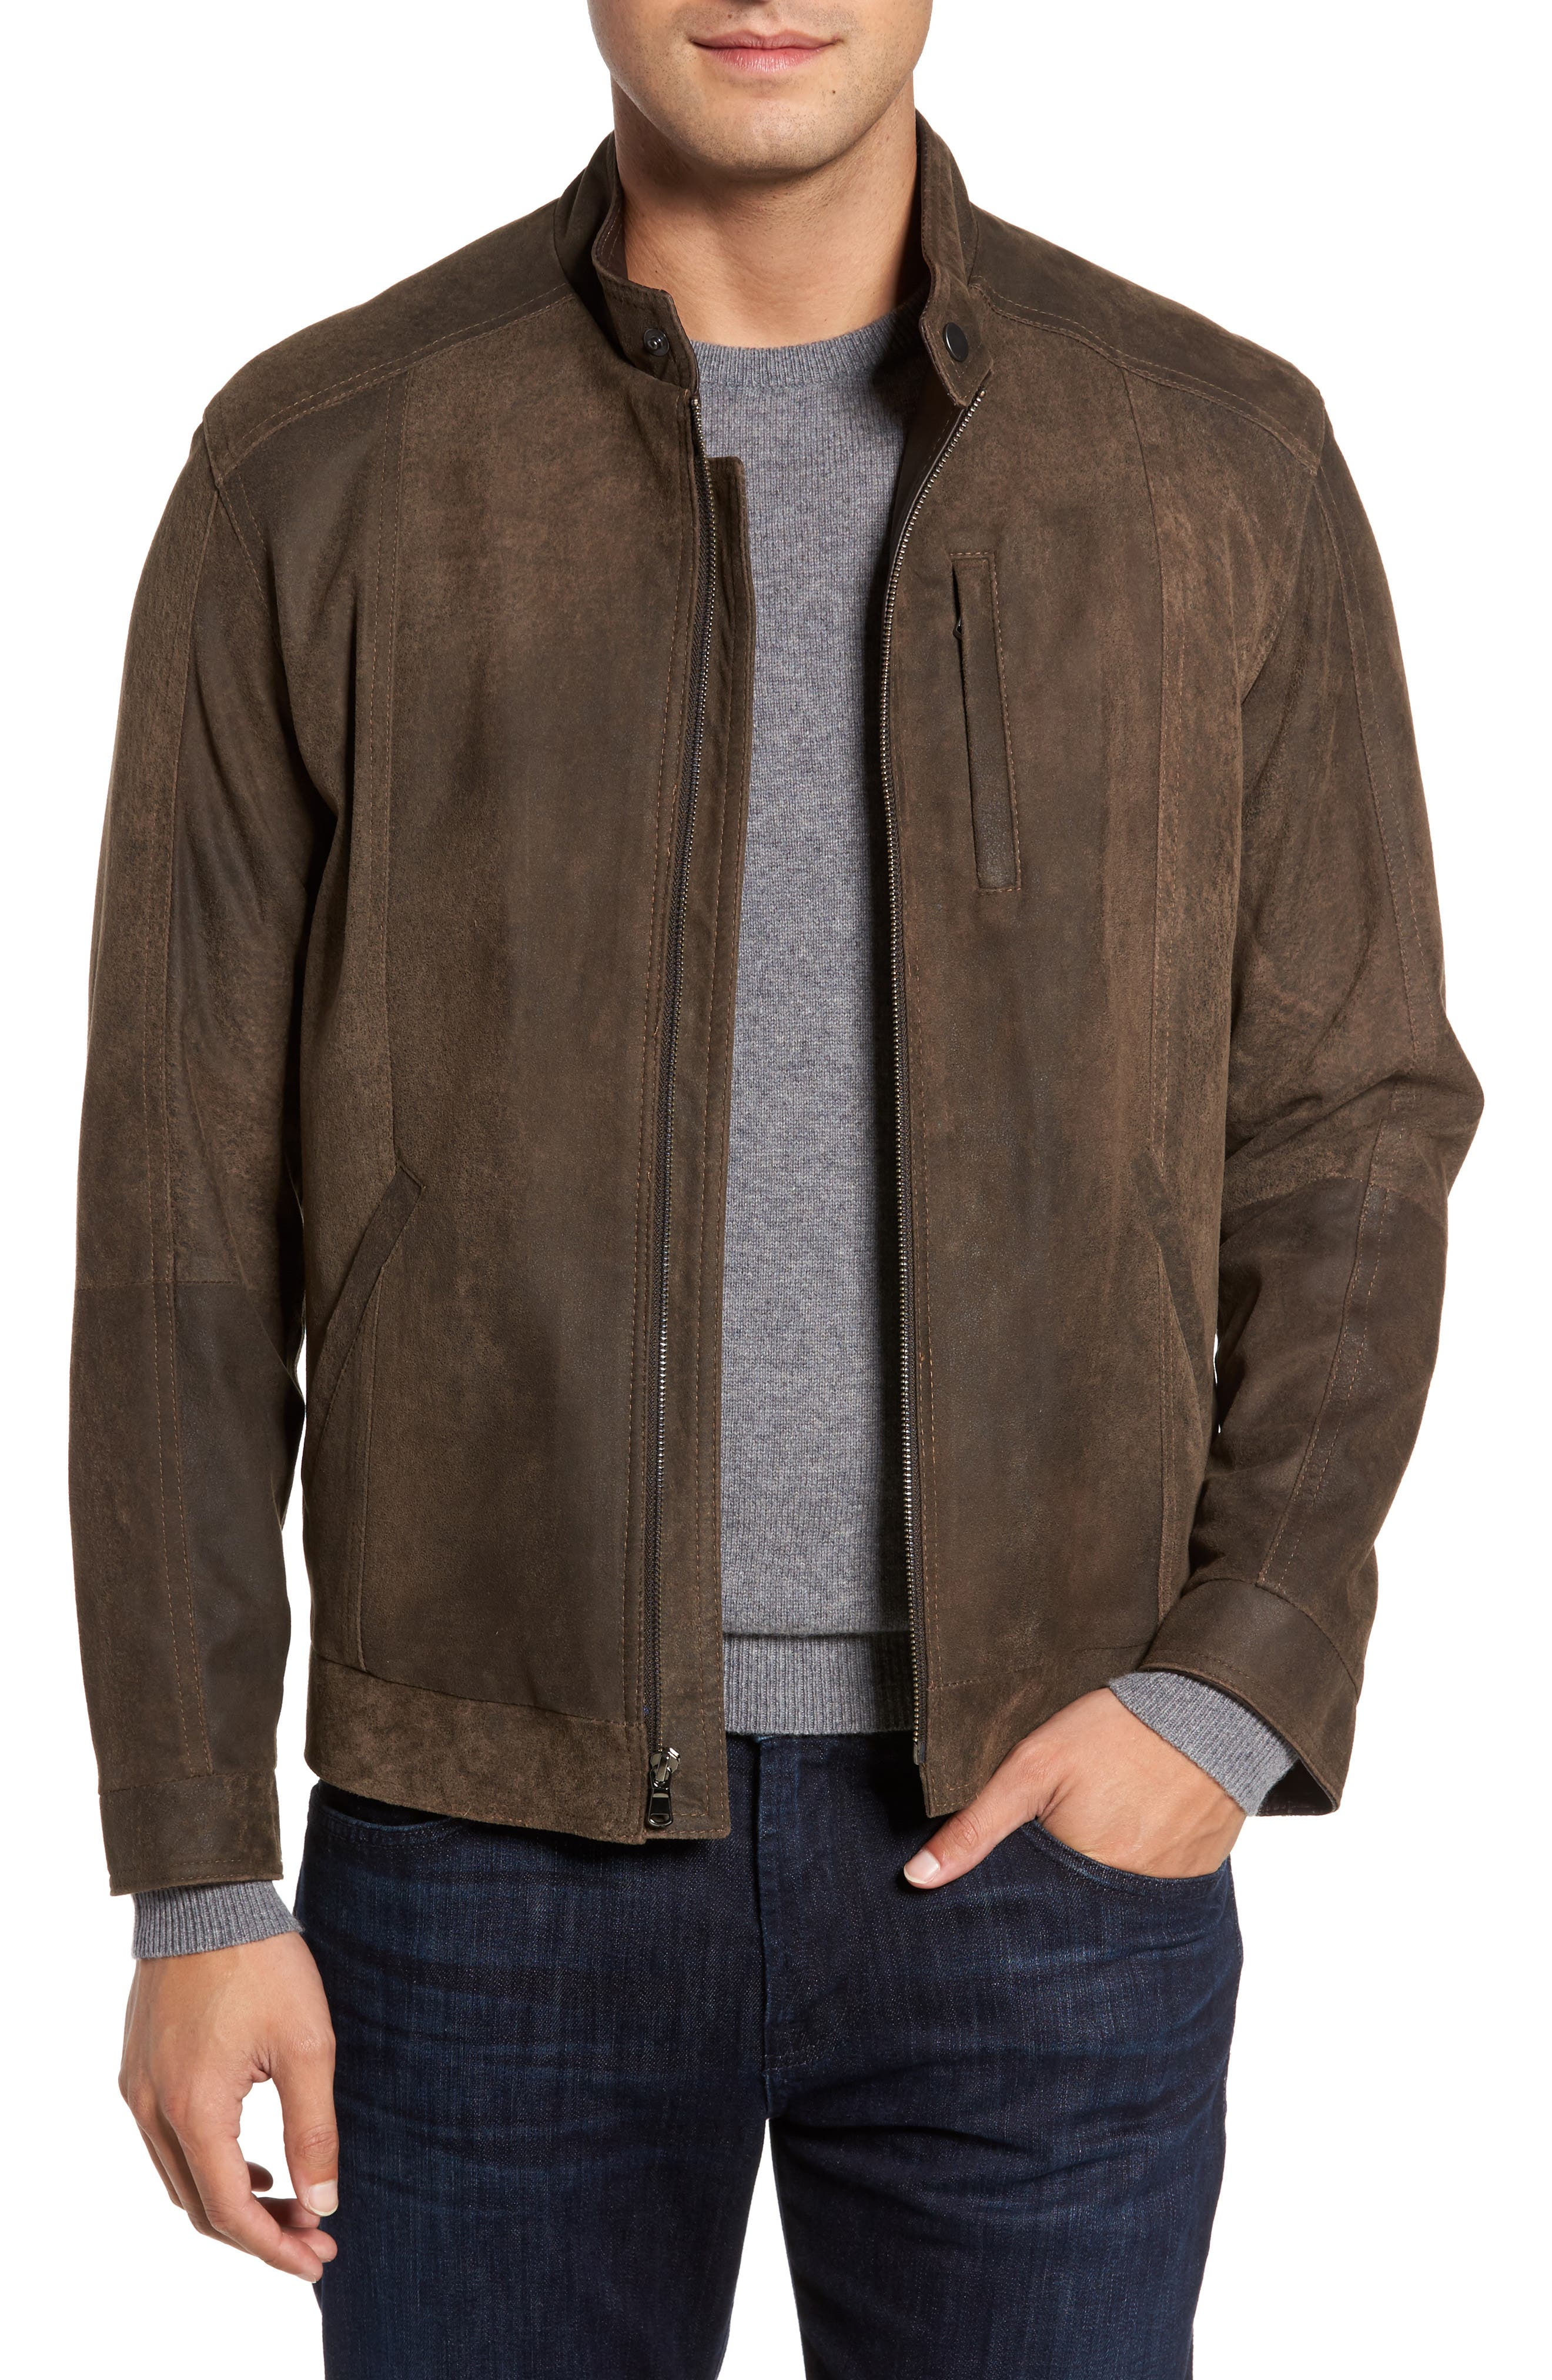 Remy Leather Suede Moto Jacket, 6R - Brown